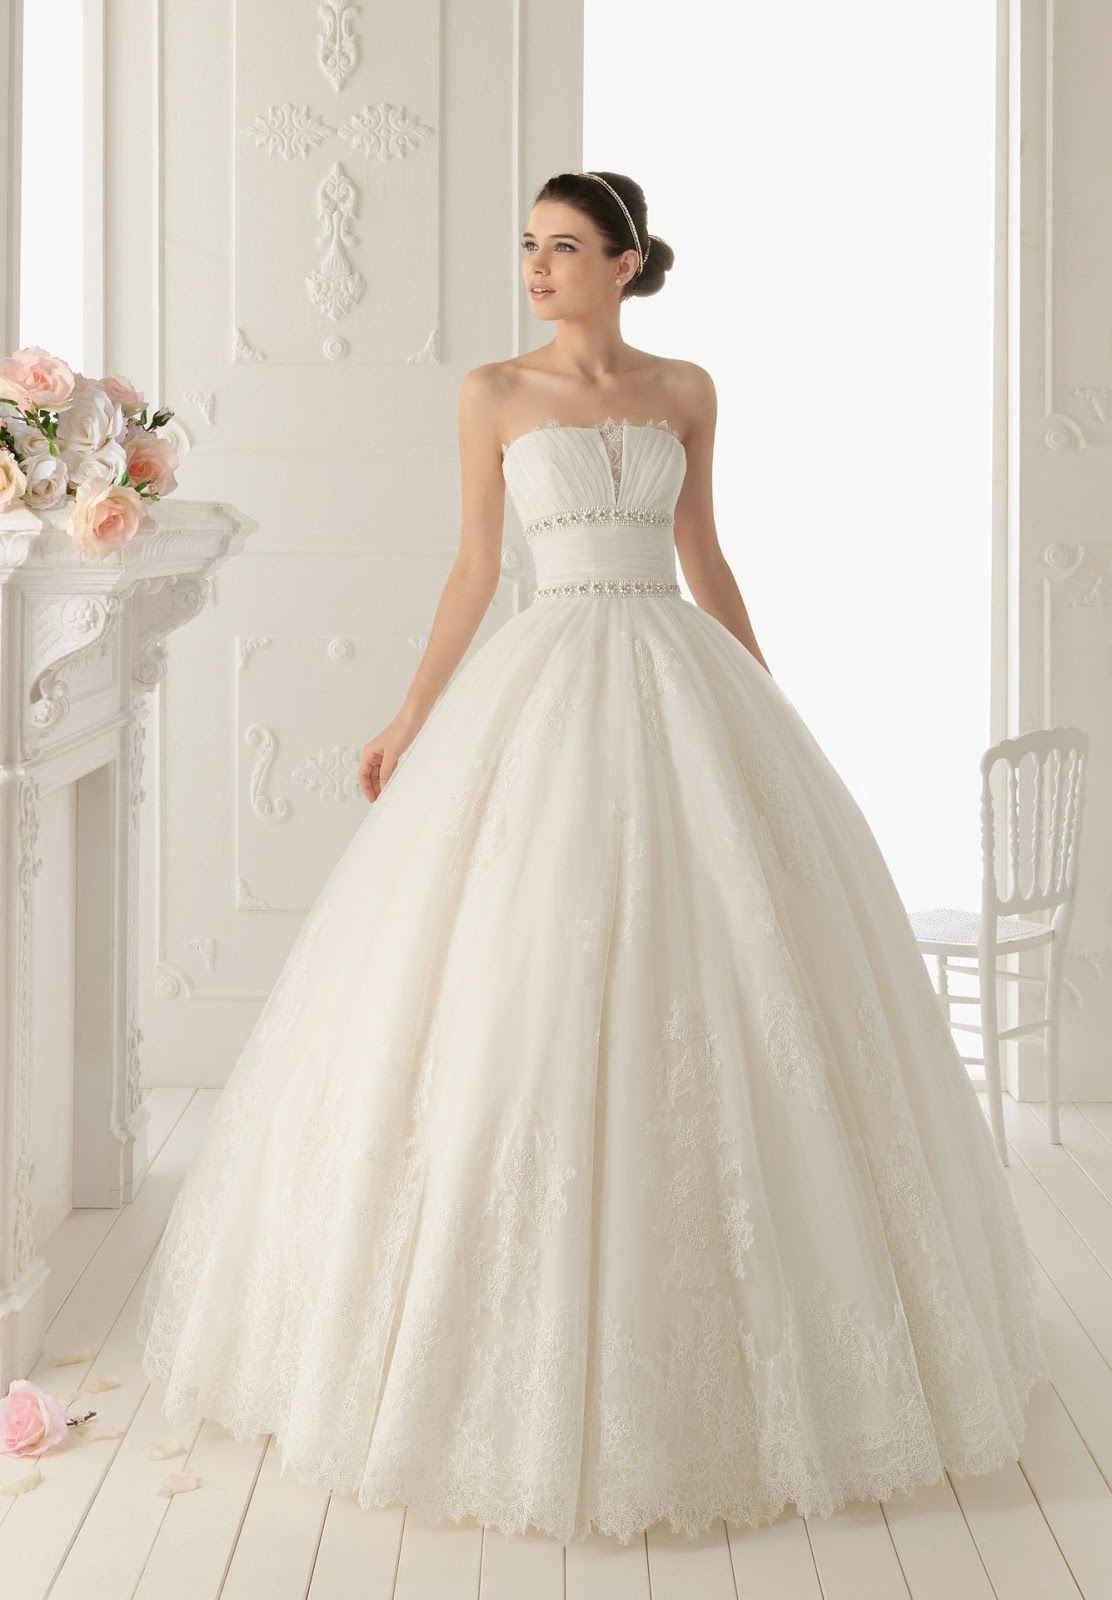 Elegance Of   Wedding Dresses : Whiteazalea ball gowns lace gown wedding dress